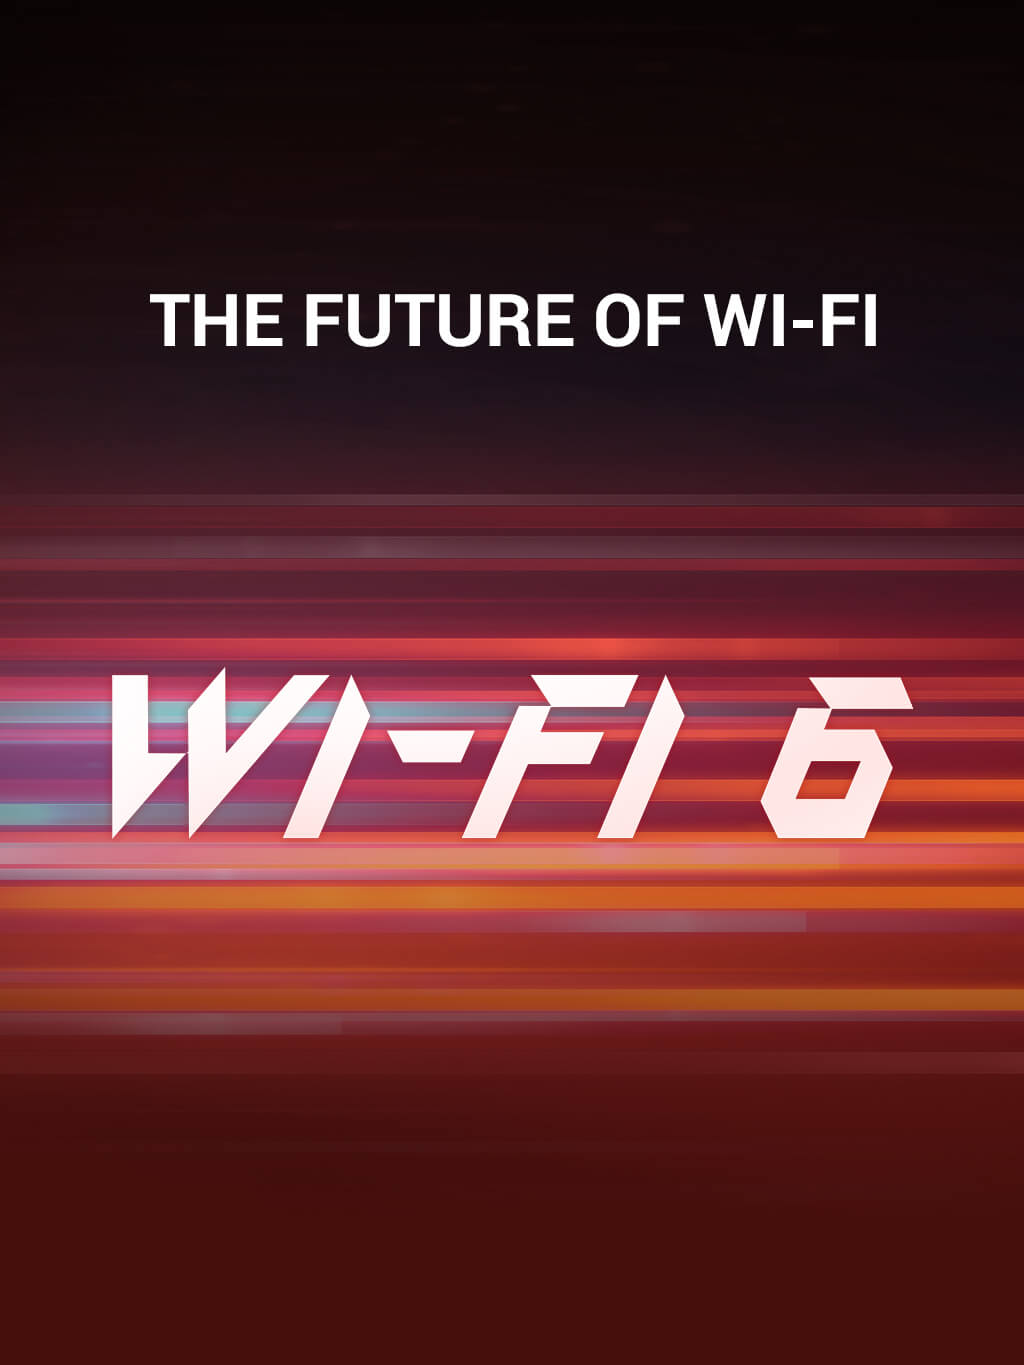 THE FUTURE OF WI-FI